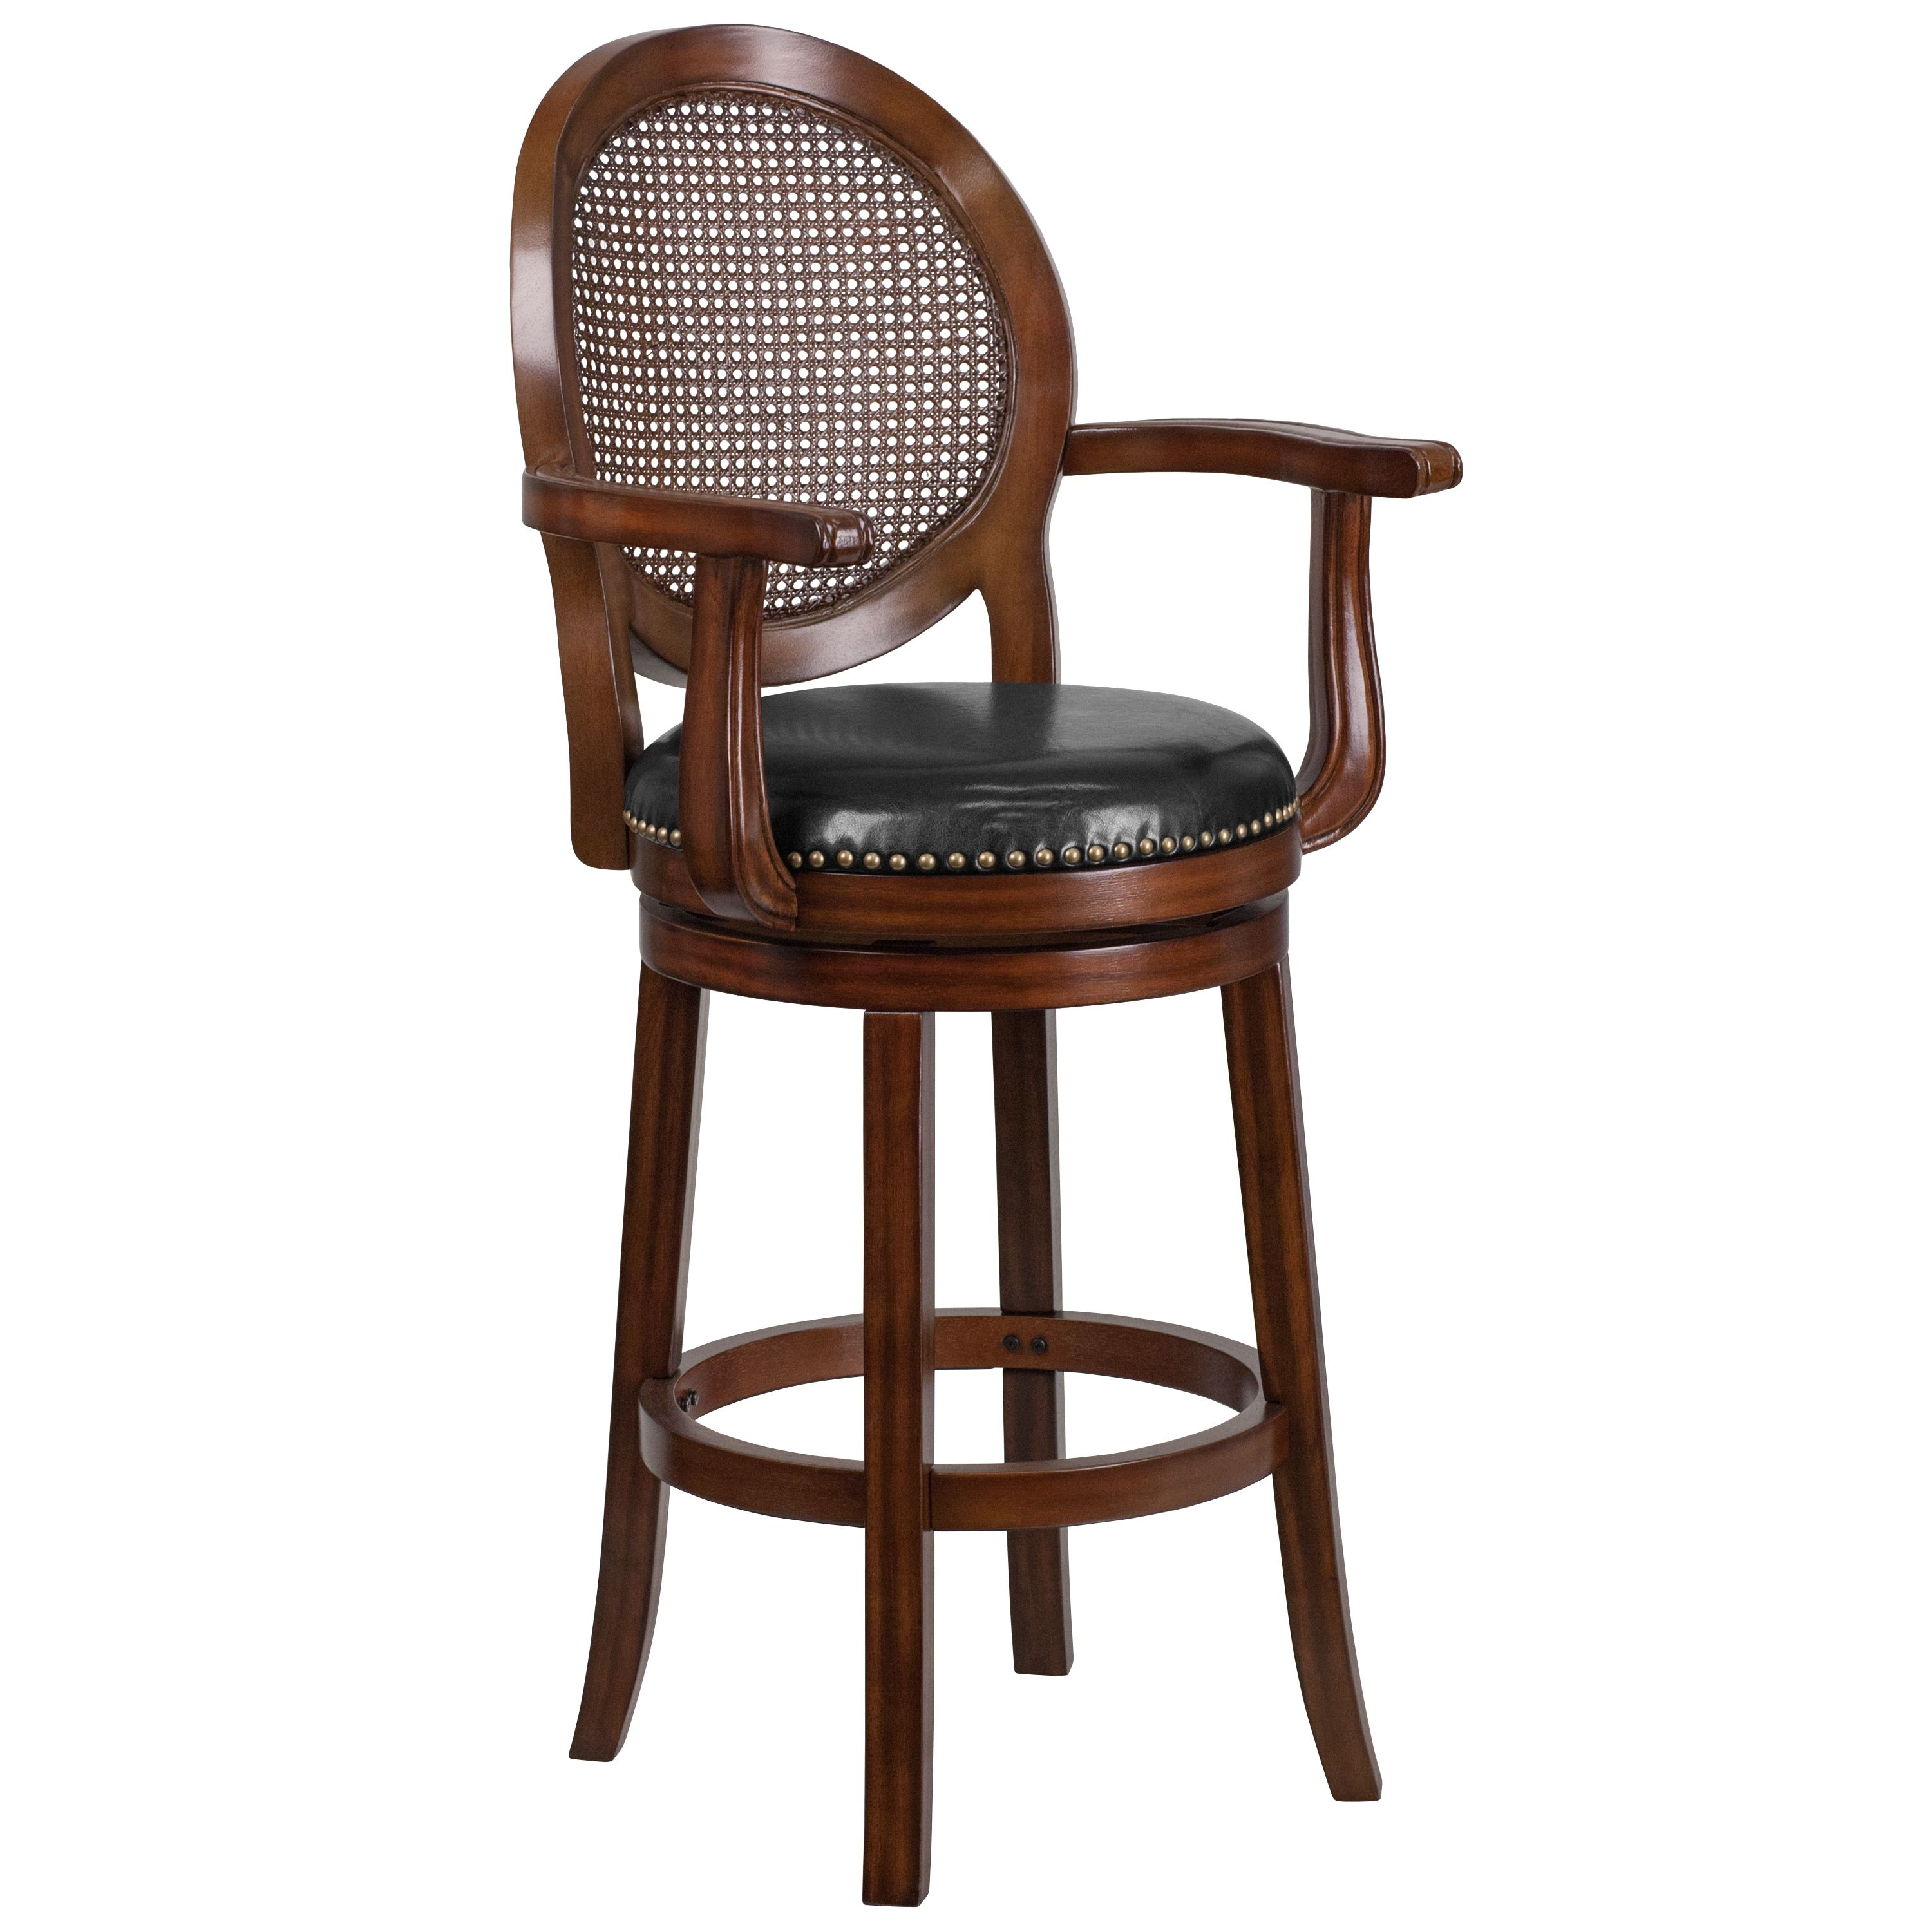 Prime Flash Furniture 30 Inch High Wood Barstool With Arms And Ncnpc Chair Design For Home Ncnpcorg